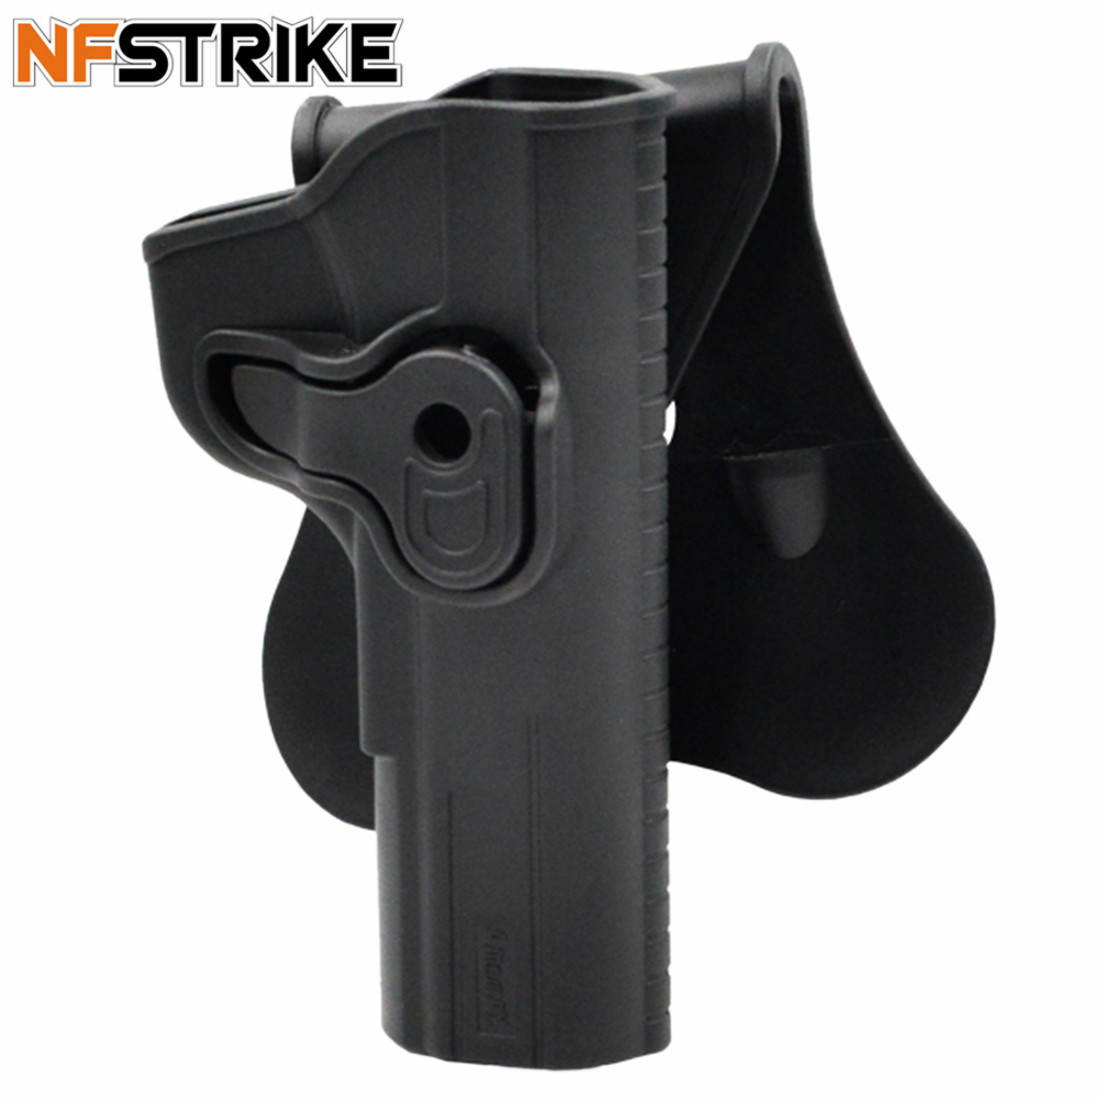 NFSTRIKE Amomax Adjustable Tactical Holster For Tokarev TT-33 High Quality  - Right-Handed Black